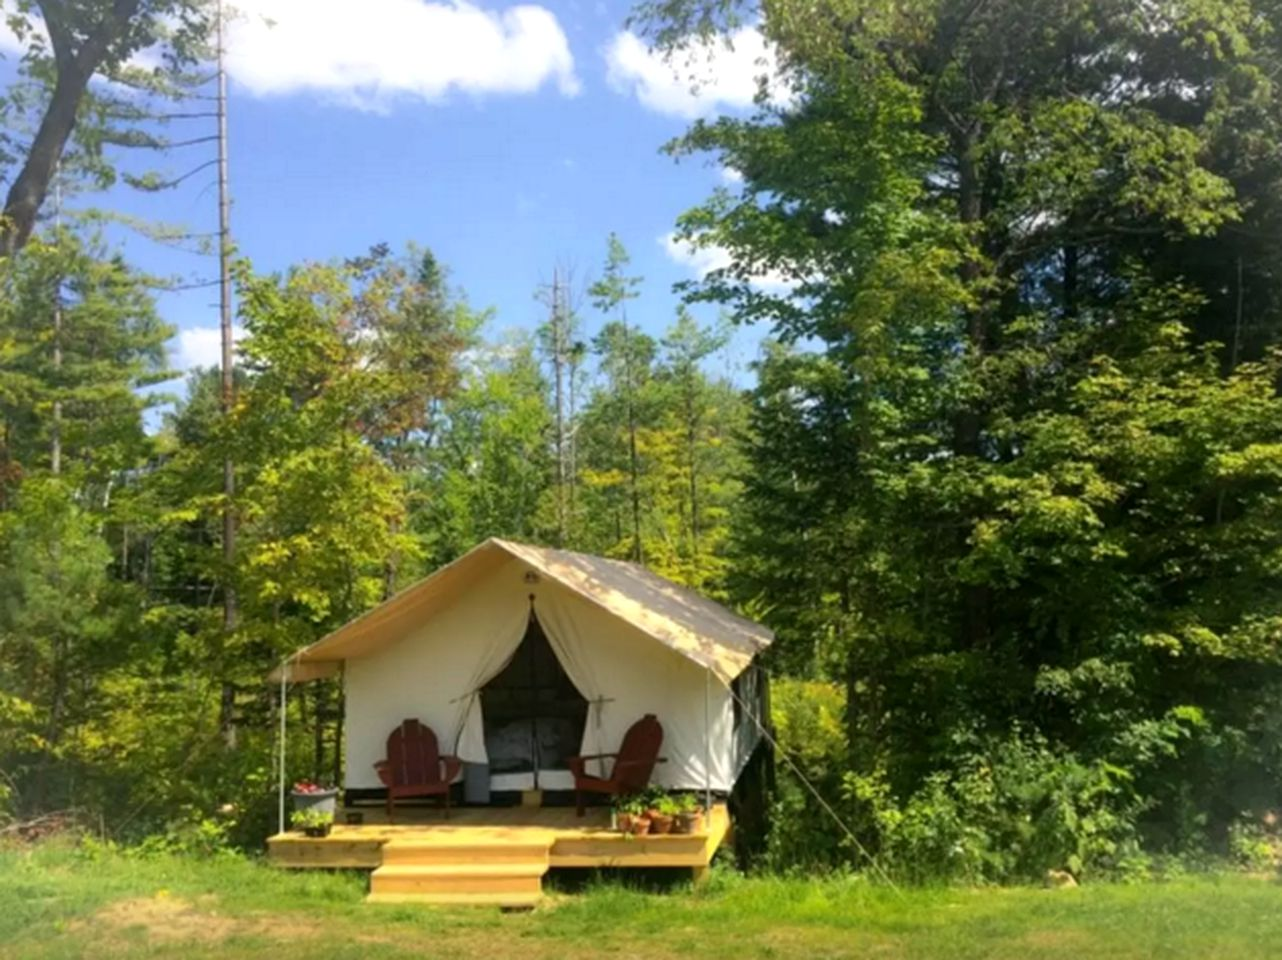 Tented Cabins (North River, New York, United States)